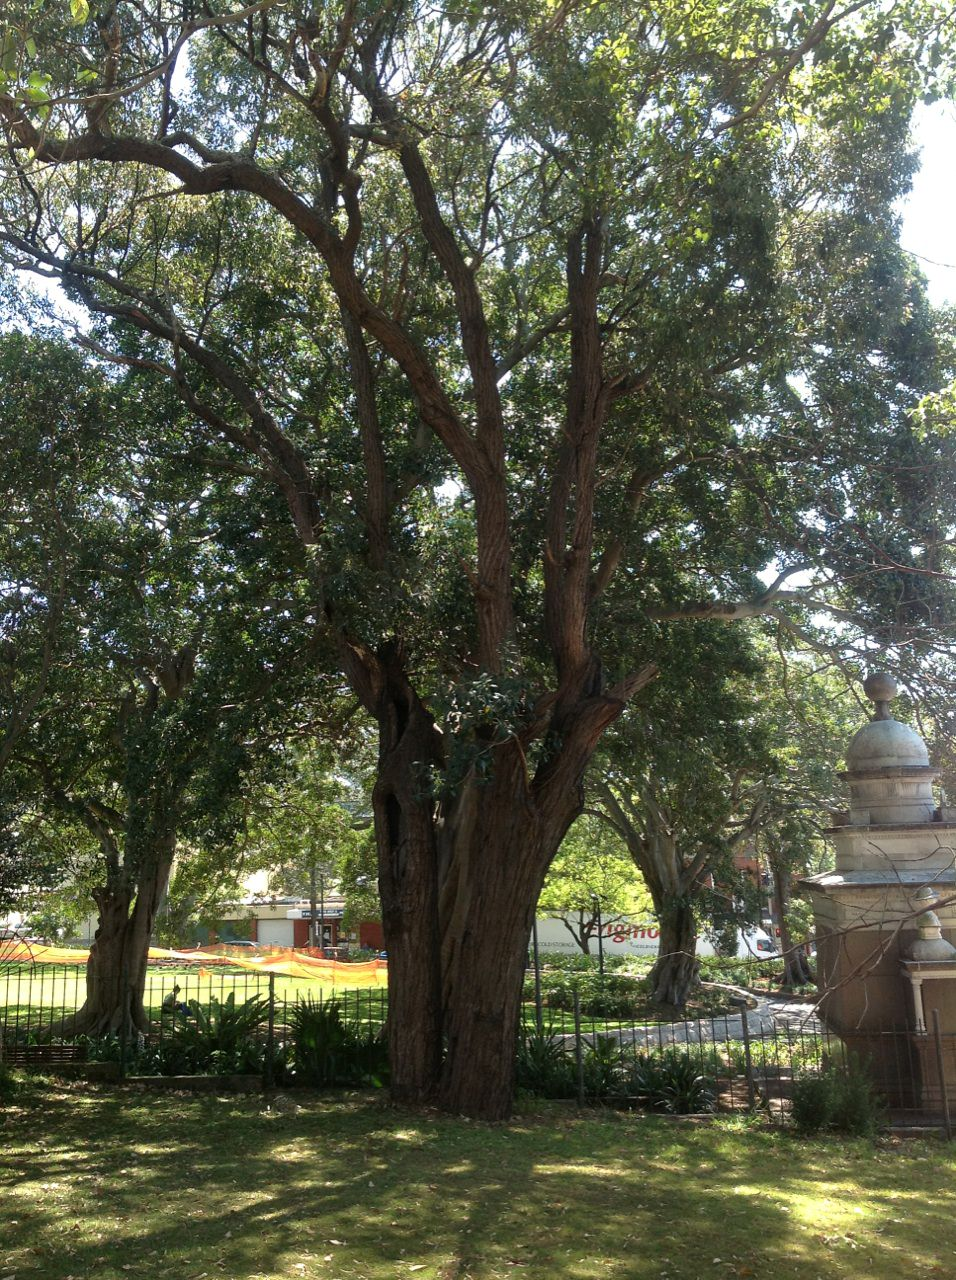 The Grey Iron Bark located in the grassed area of St Johns Anglican Church, Glebe Point Road, Glebe. This tree is thought to be the last remnant tree remaining since European settlement